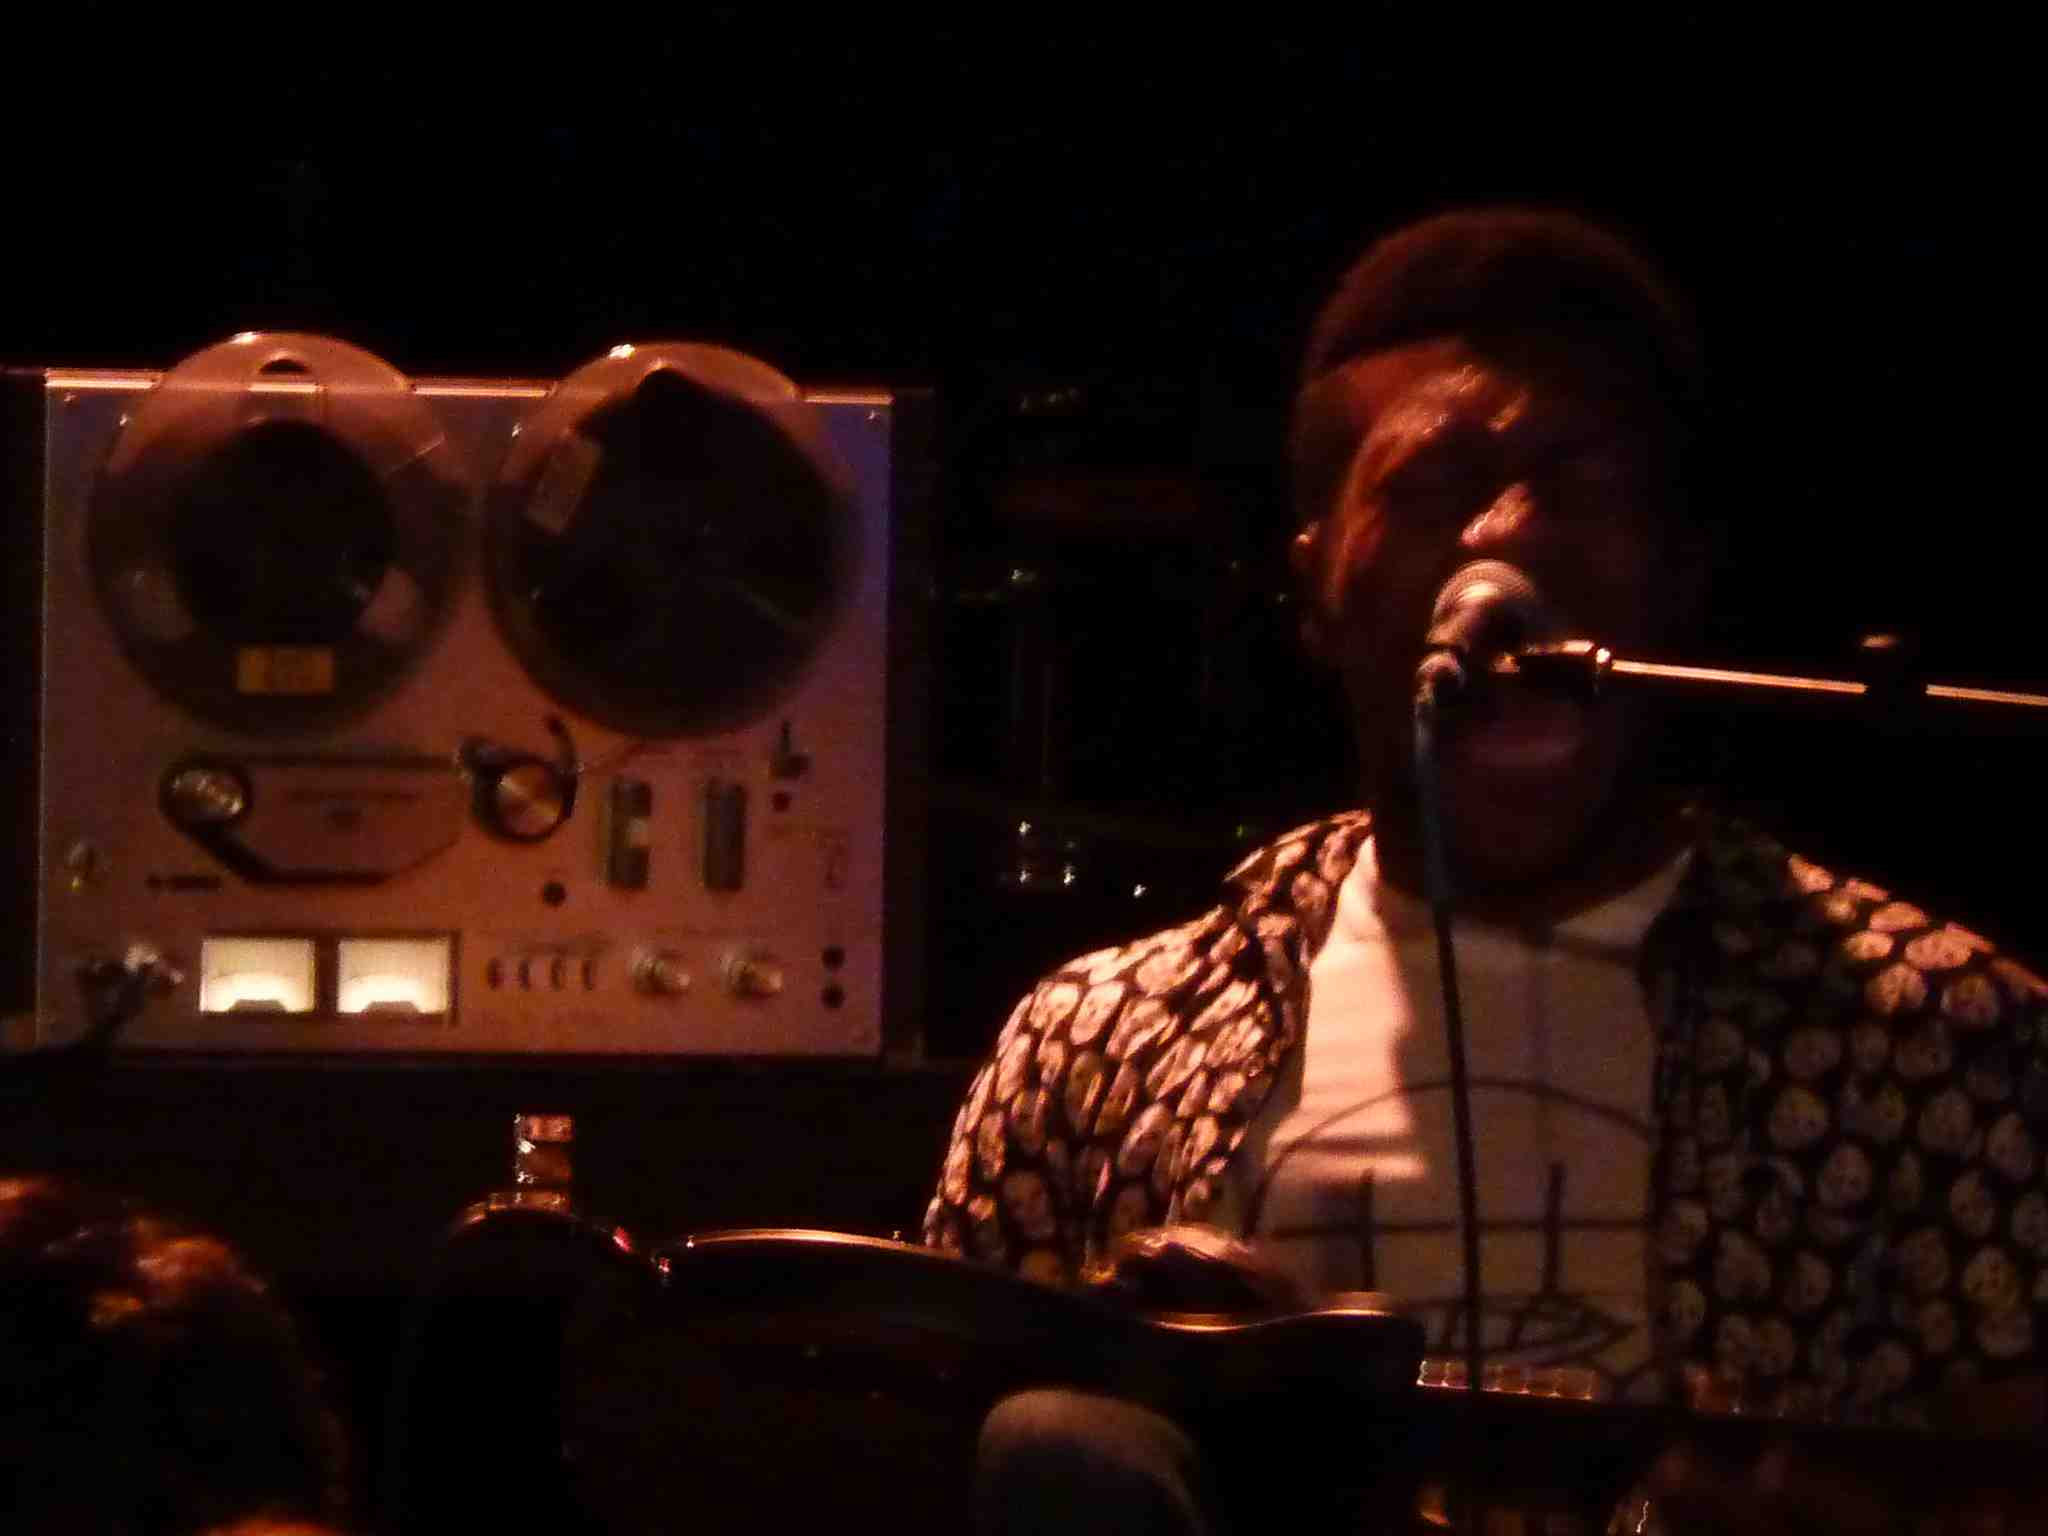 Willis Earl Beale